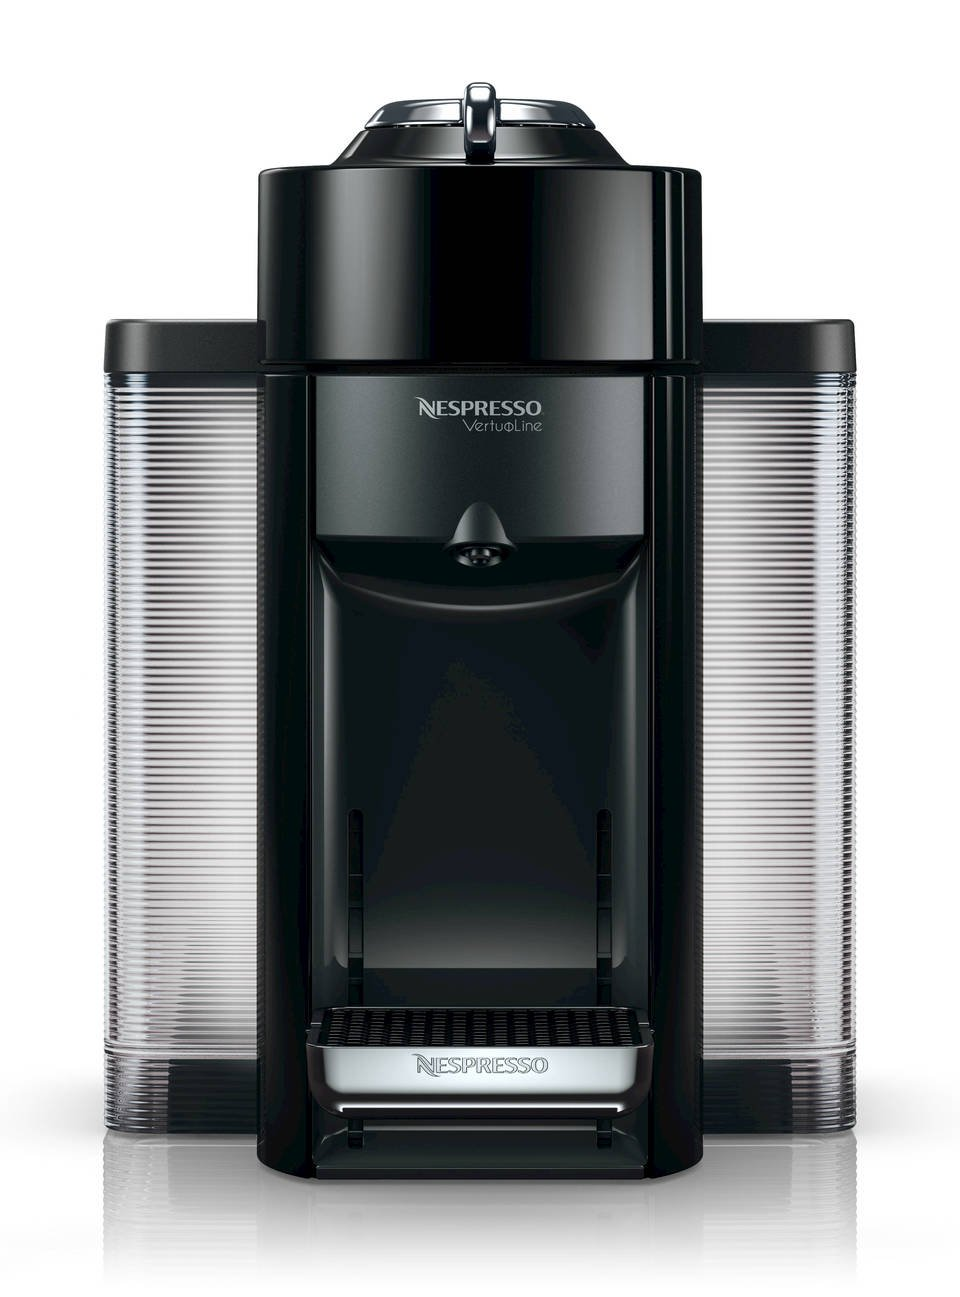 Nespresso A+GCC1-US-BK-NE VertuoLine Evoluo Deluxe Coffee & Espresso Maker with Aeroccino Plus Milk Frother, Black (Discontinued Model) by Nespresso (Image #5)